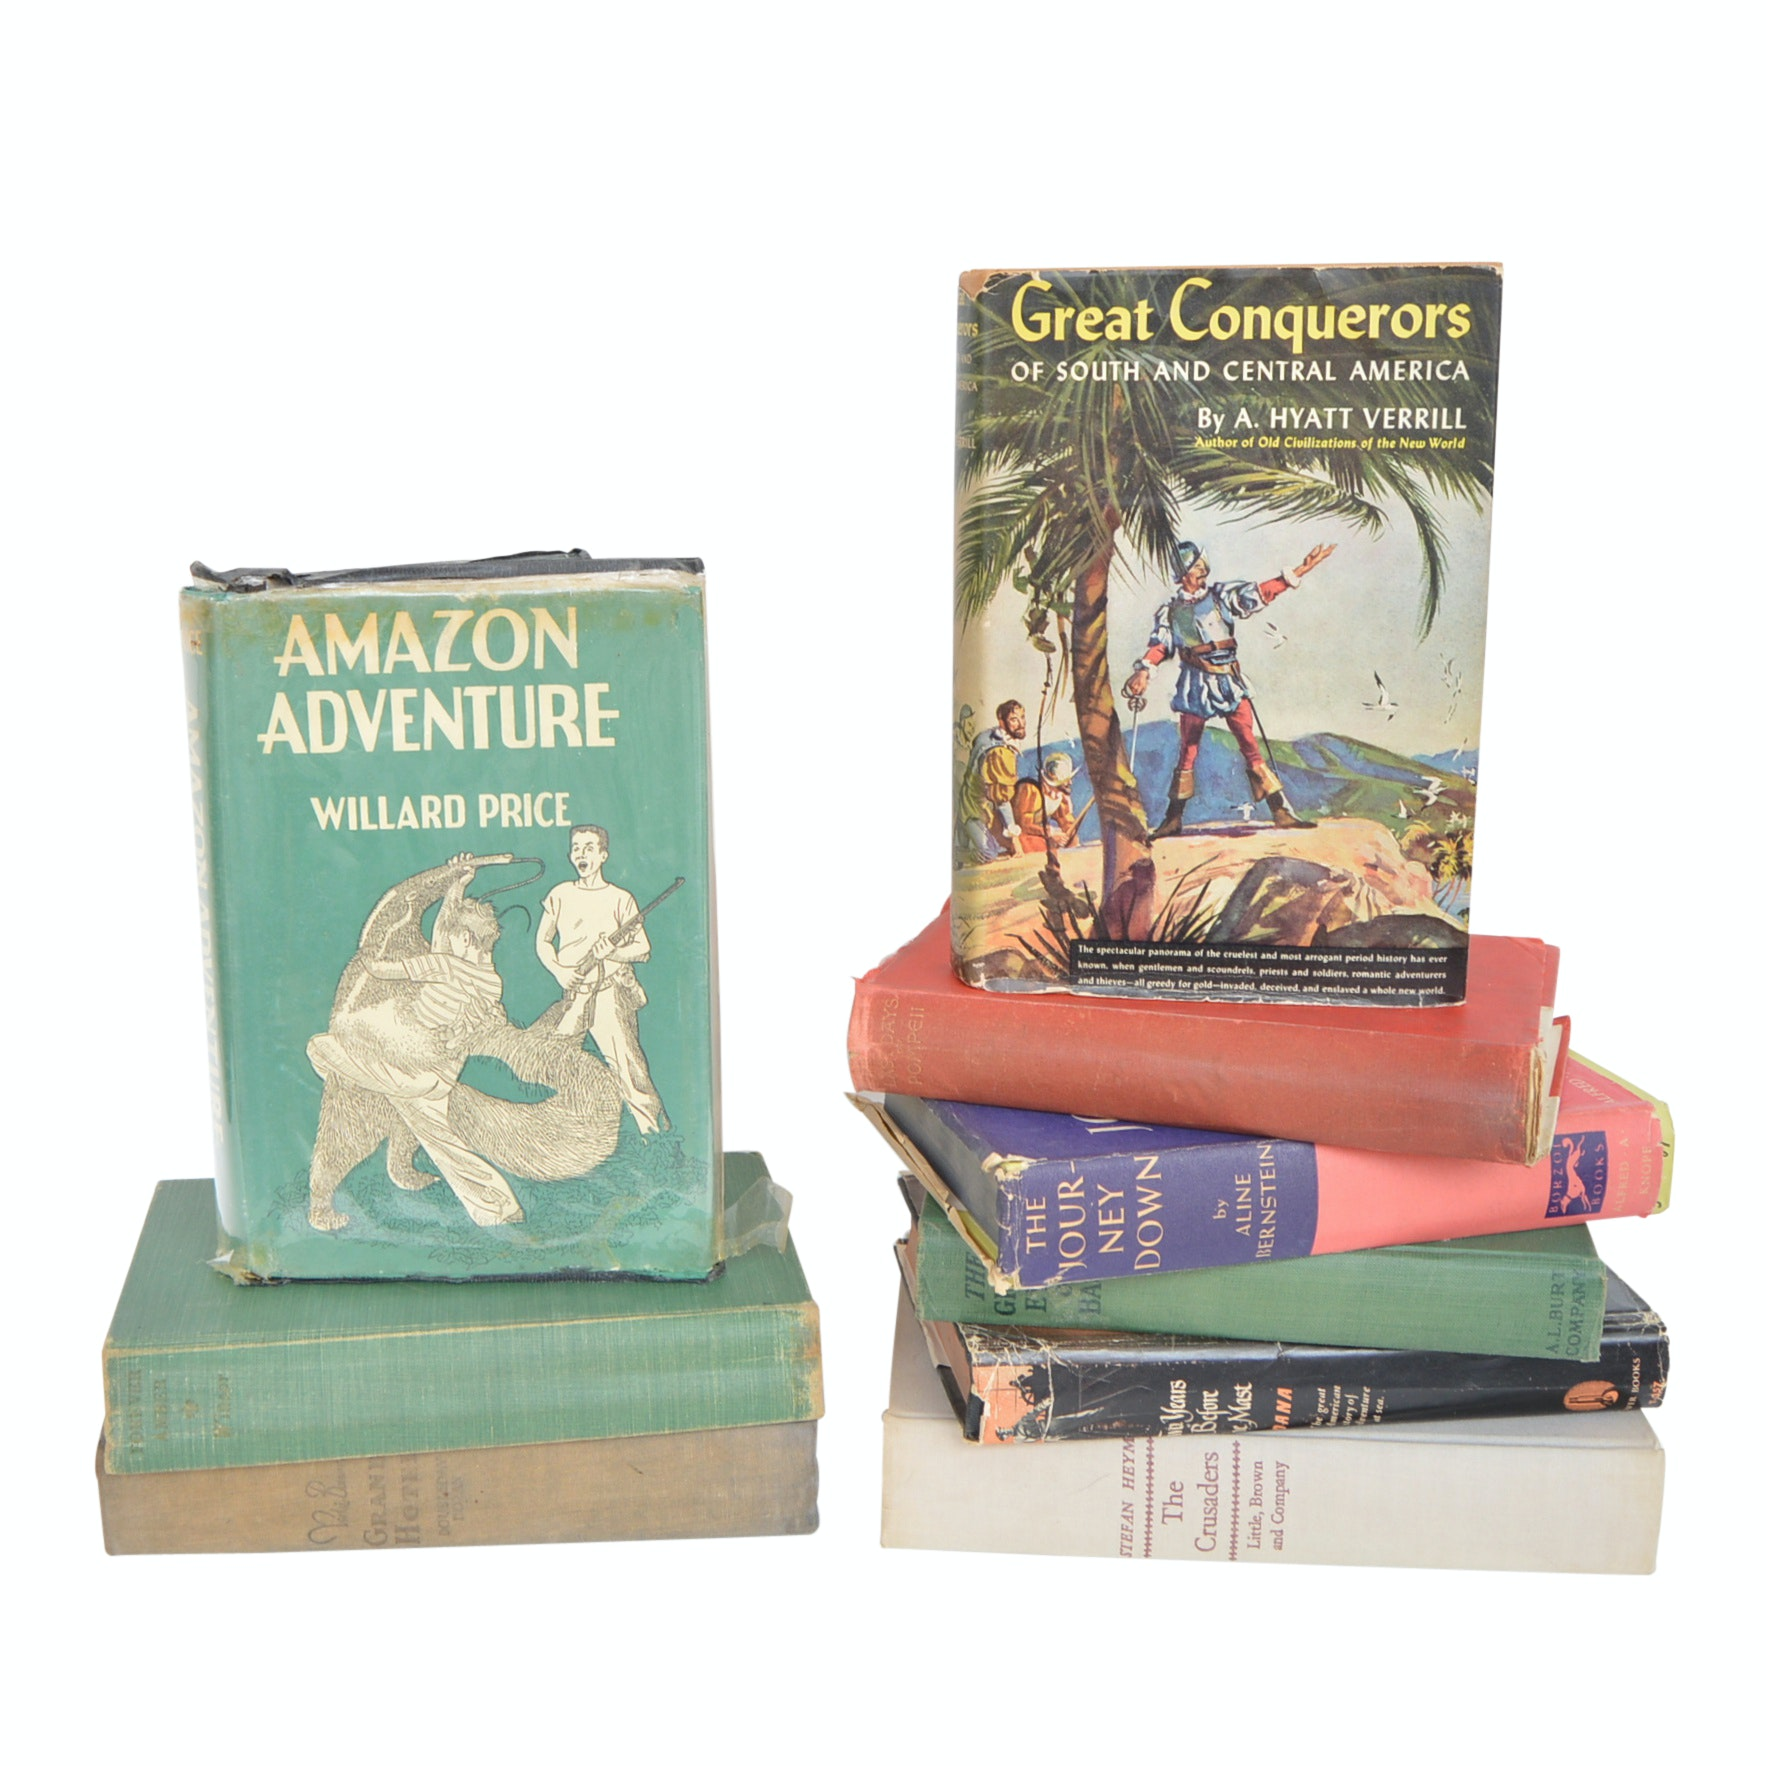 Vintage Adventure Books